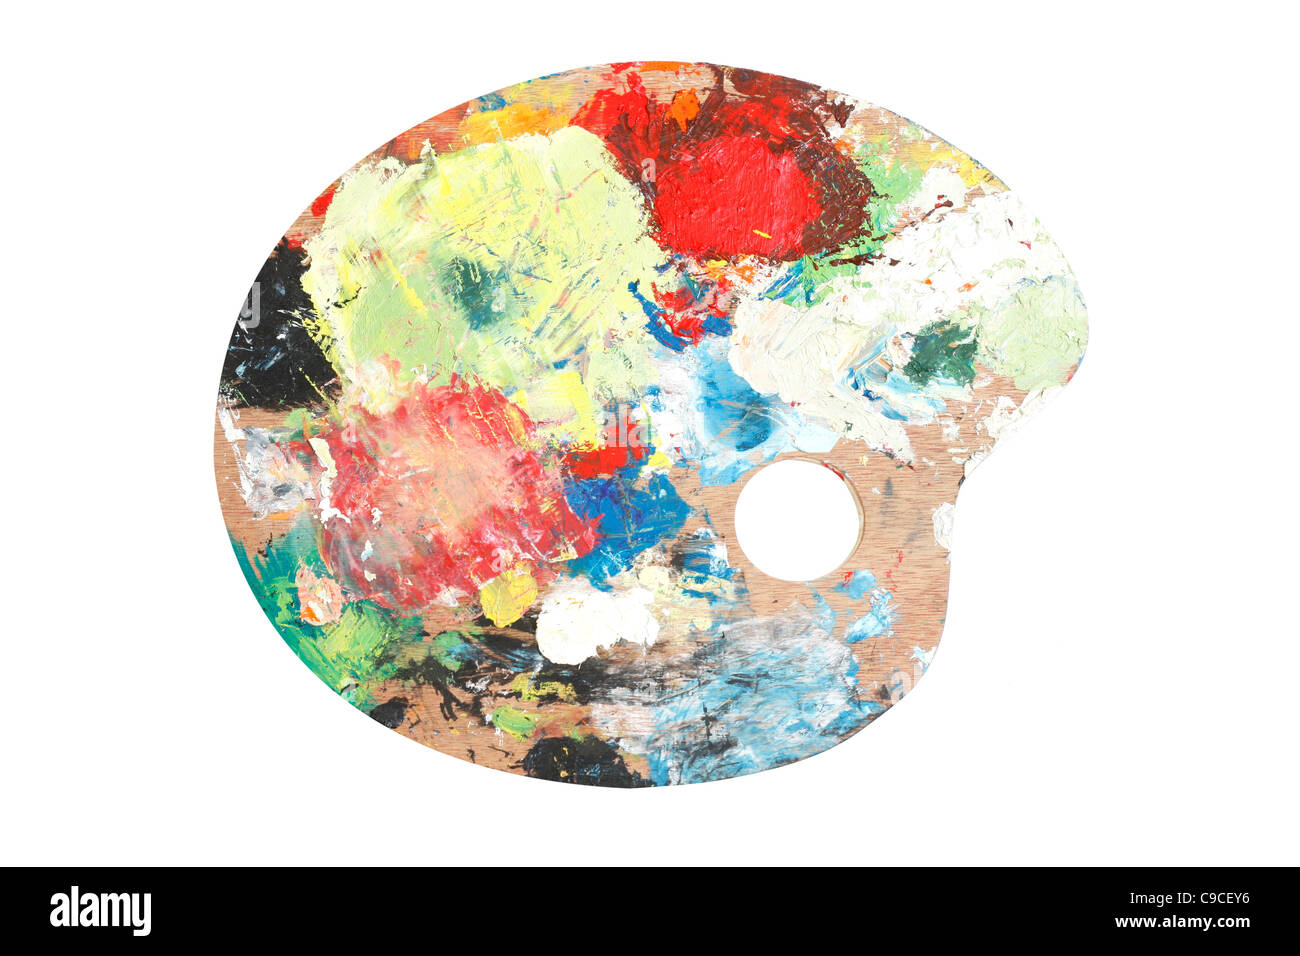 A painters palette isolated on white - Stock Image